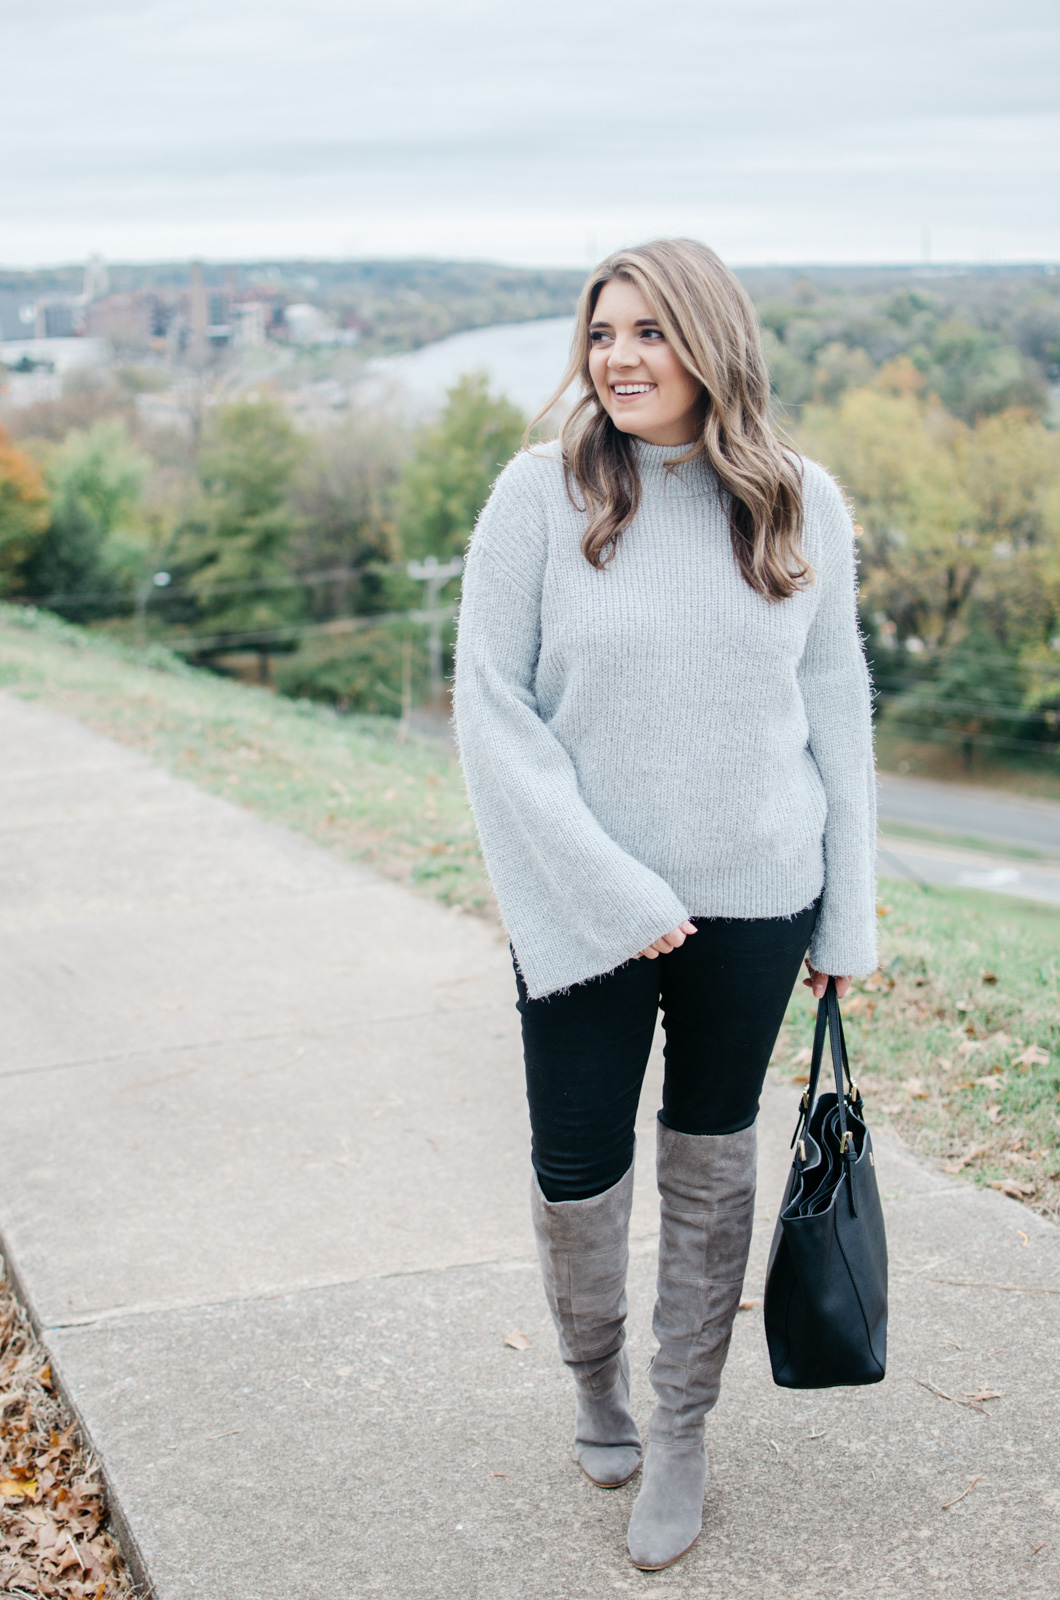 bell sleeve sweater outfit - gray eyelash sweater outfit idea | Get more Winter outfit ideas at bylaurenm.com!